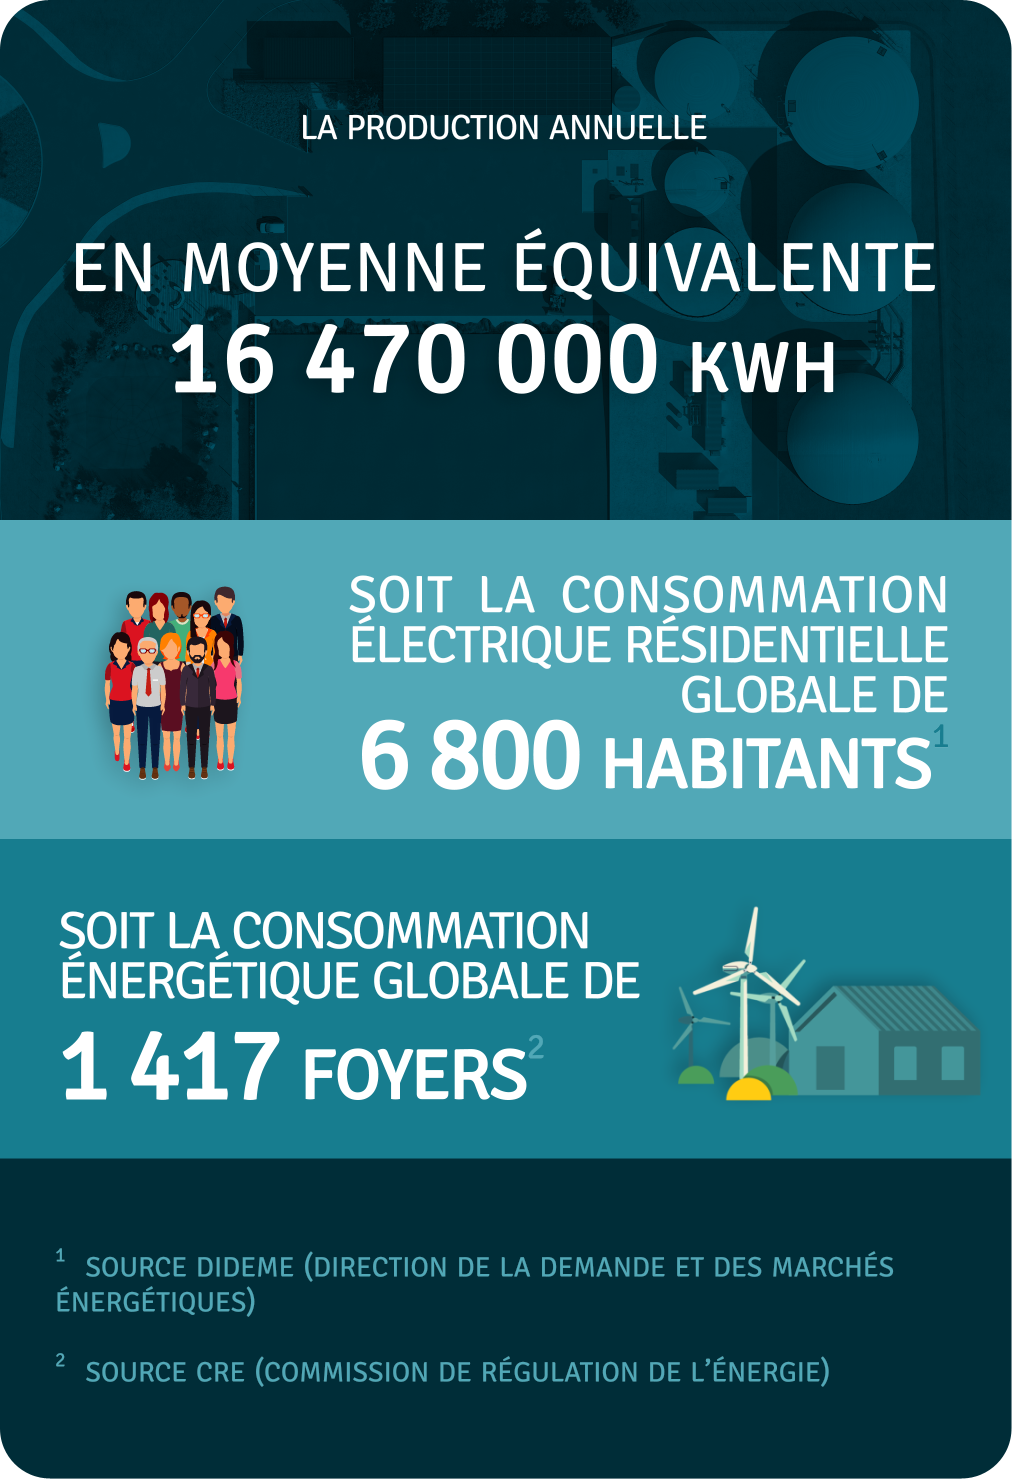 Production annuelle 16 470 000 kWh